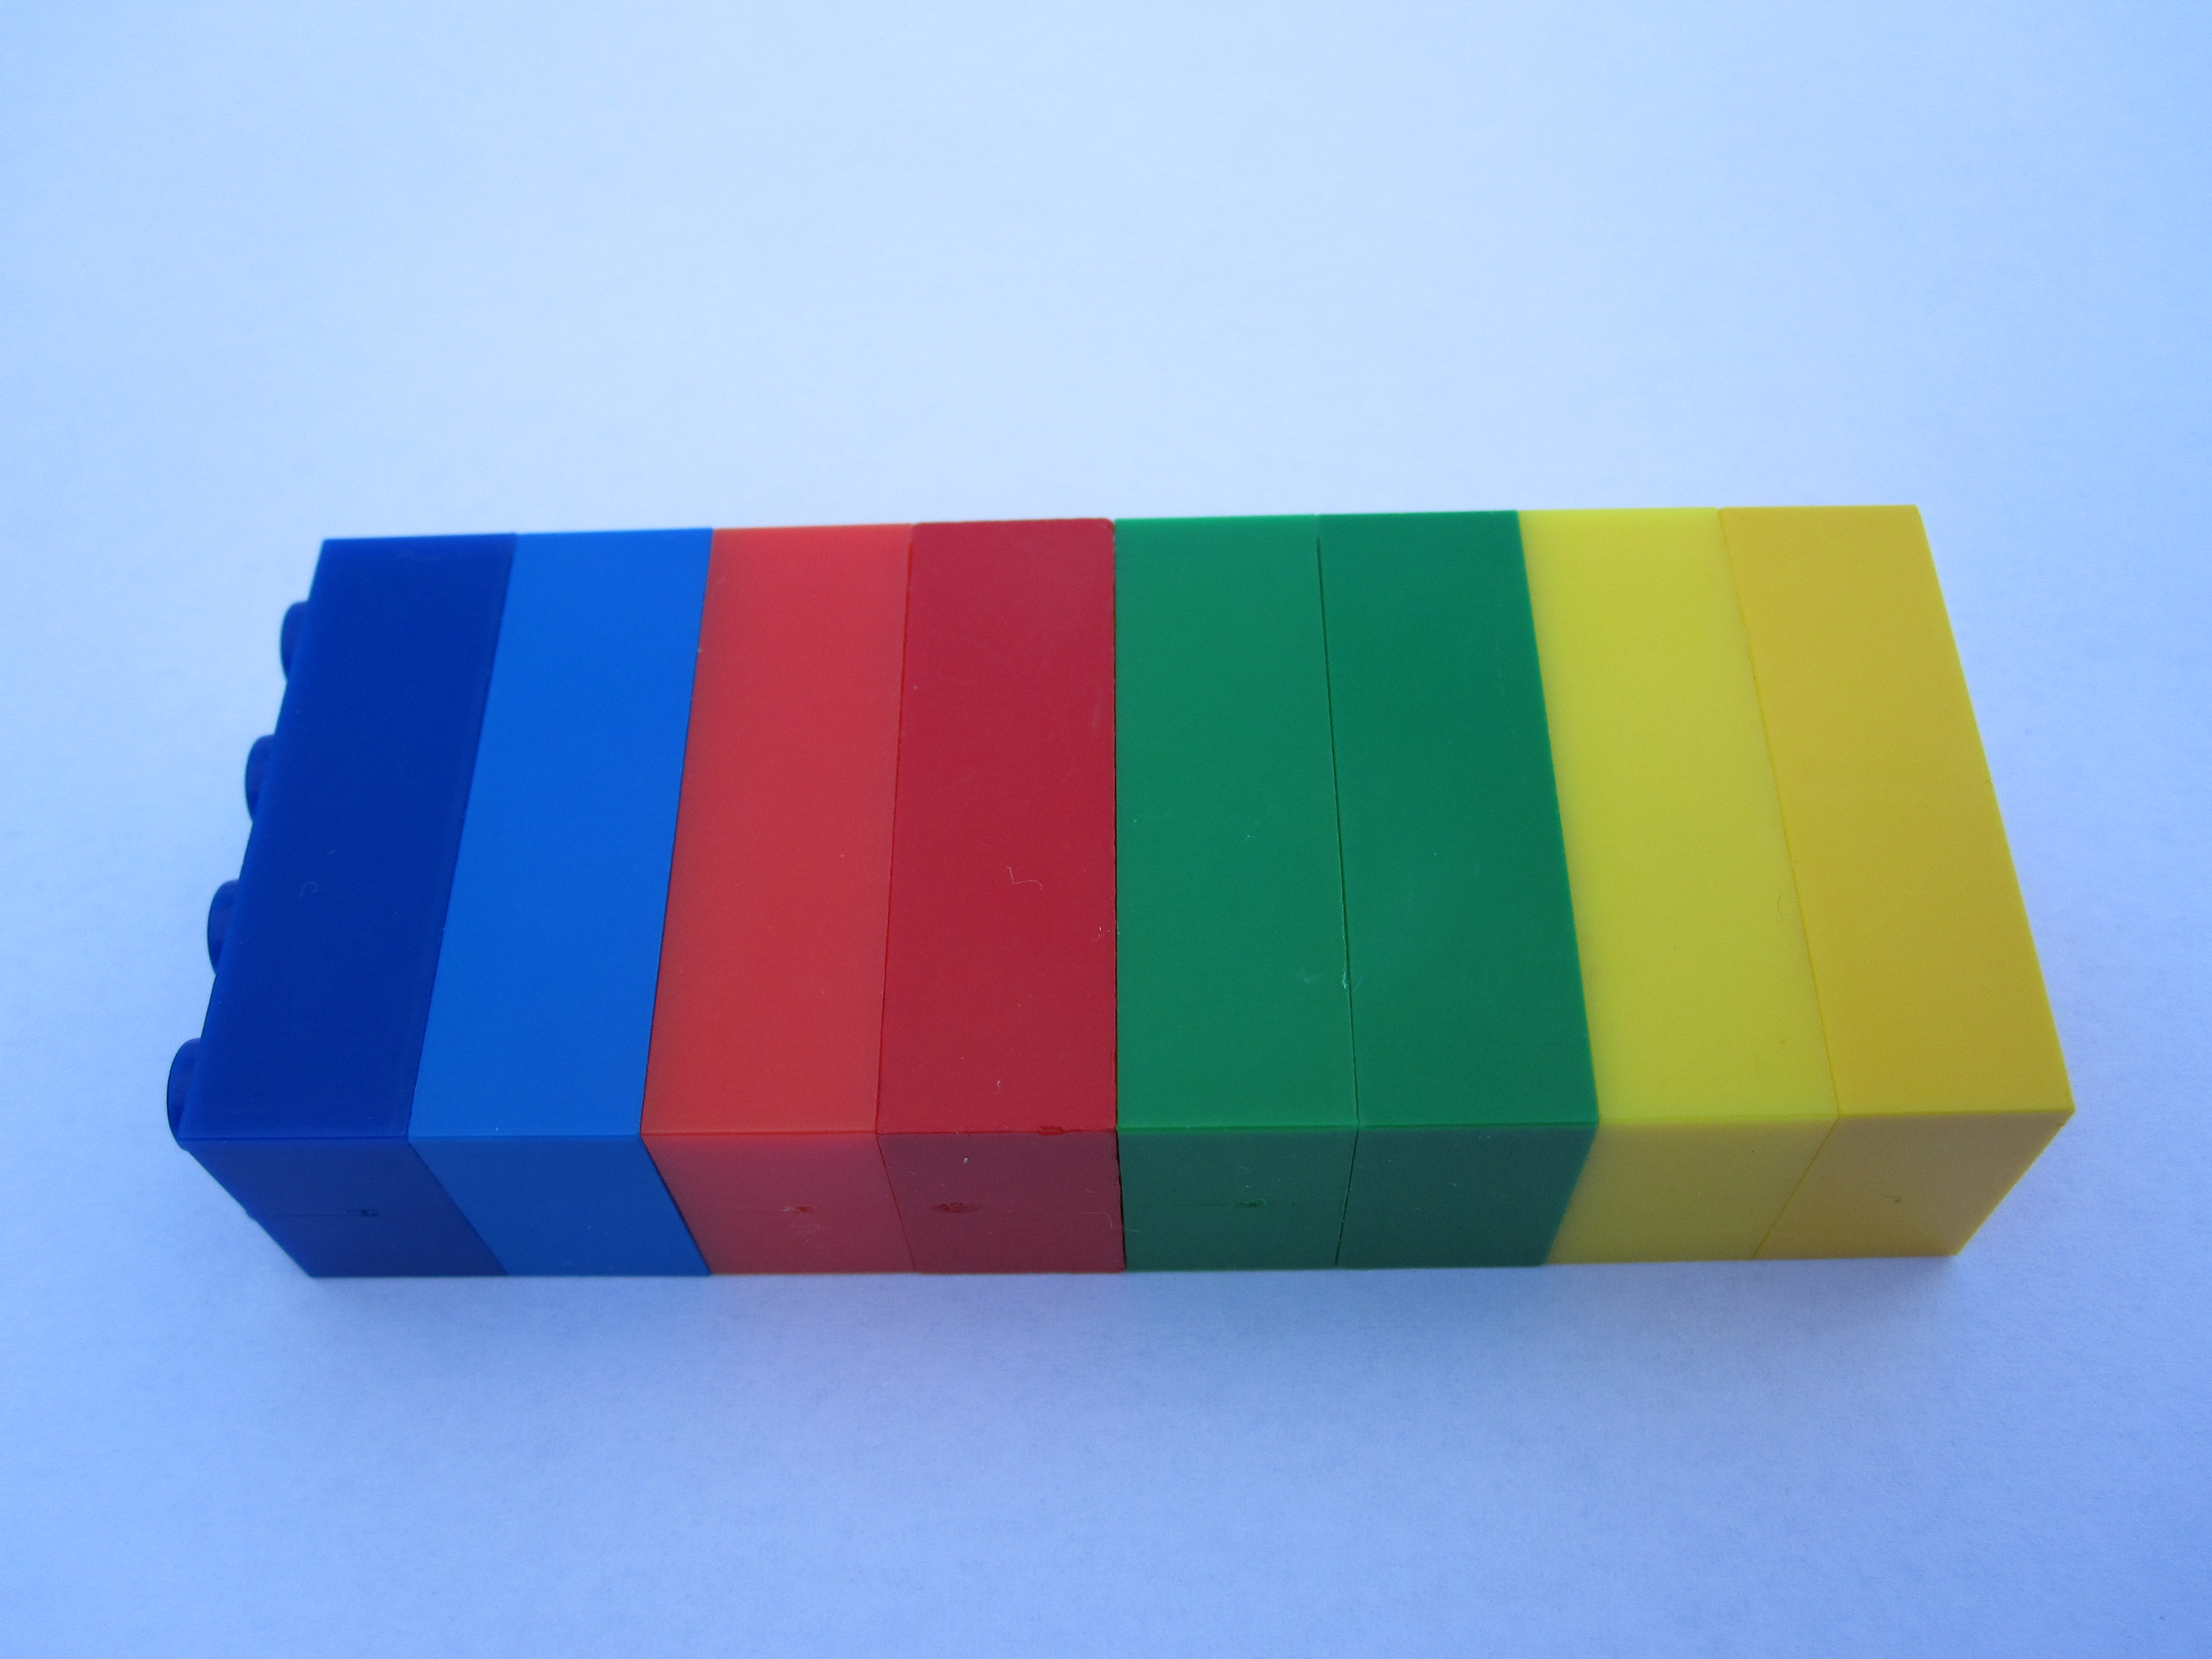 http://upload.wikimedia.org/wikipedia/commons/6/64/Best-Lock_and_Lego-bricks_compared_by_color.jpg